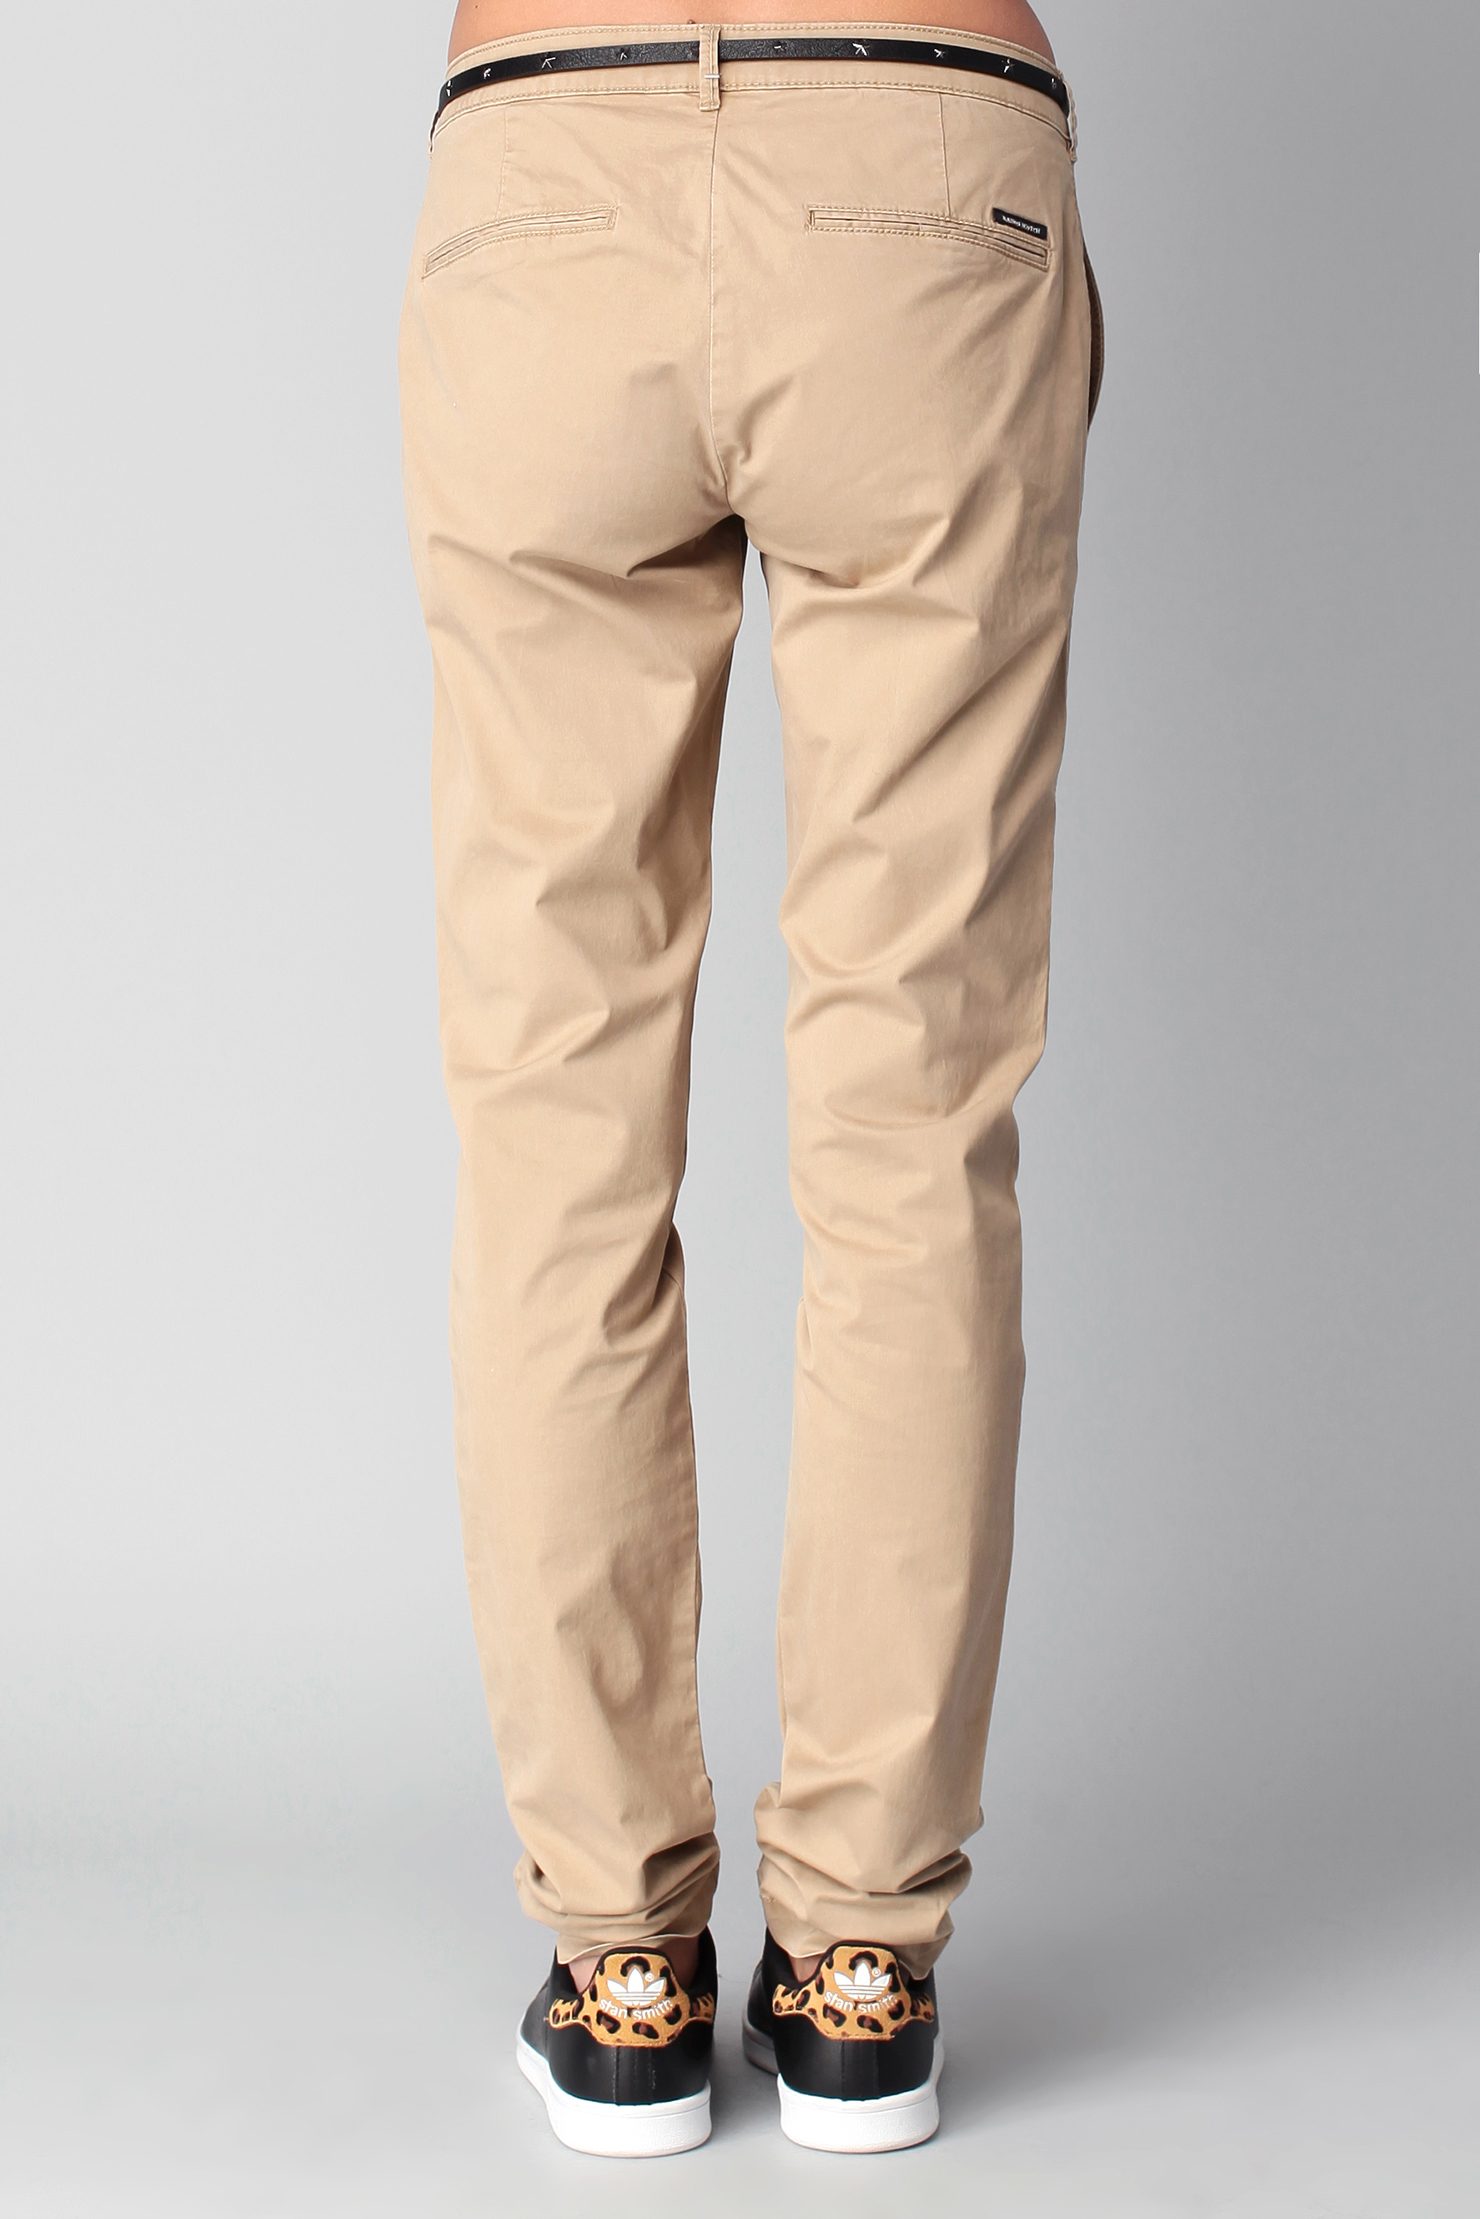 maison scotch chinos carrot in brown for men lyst